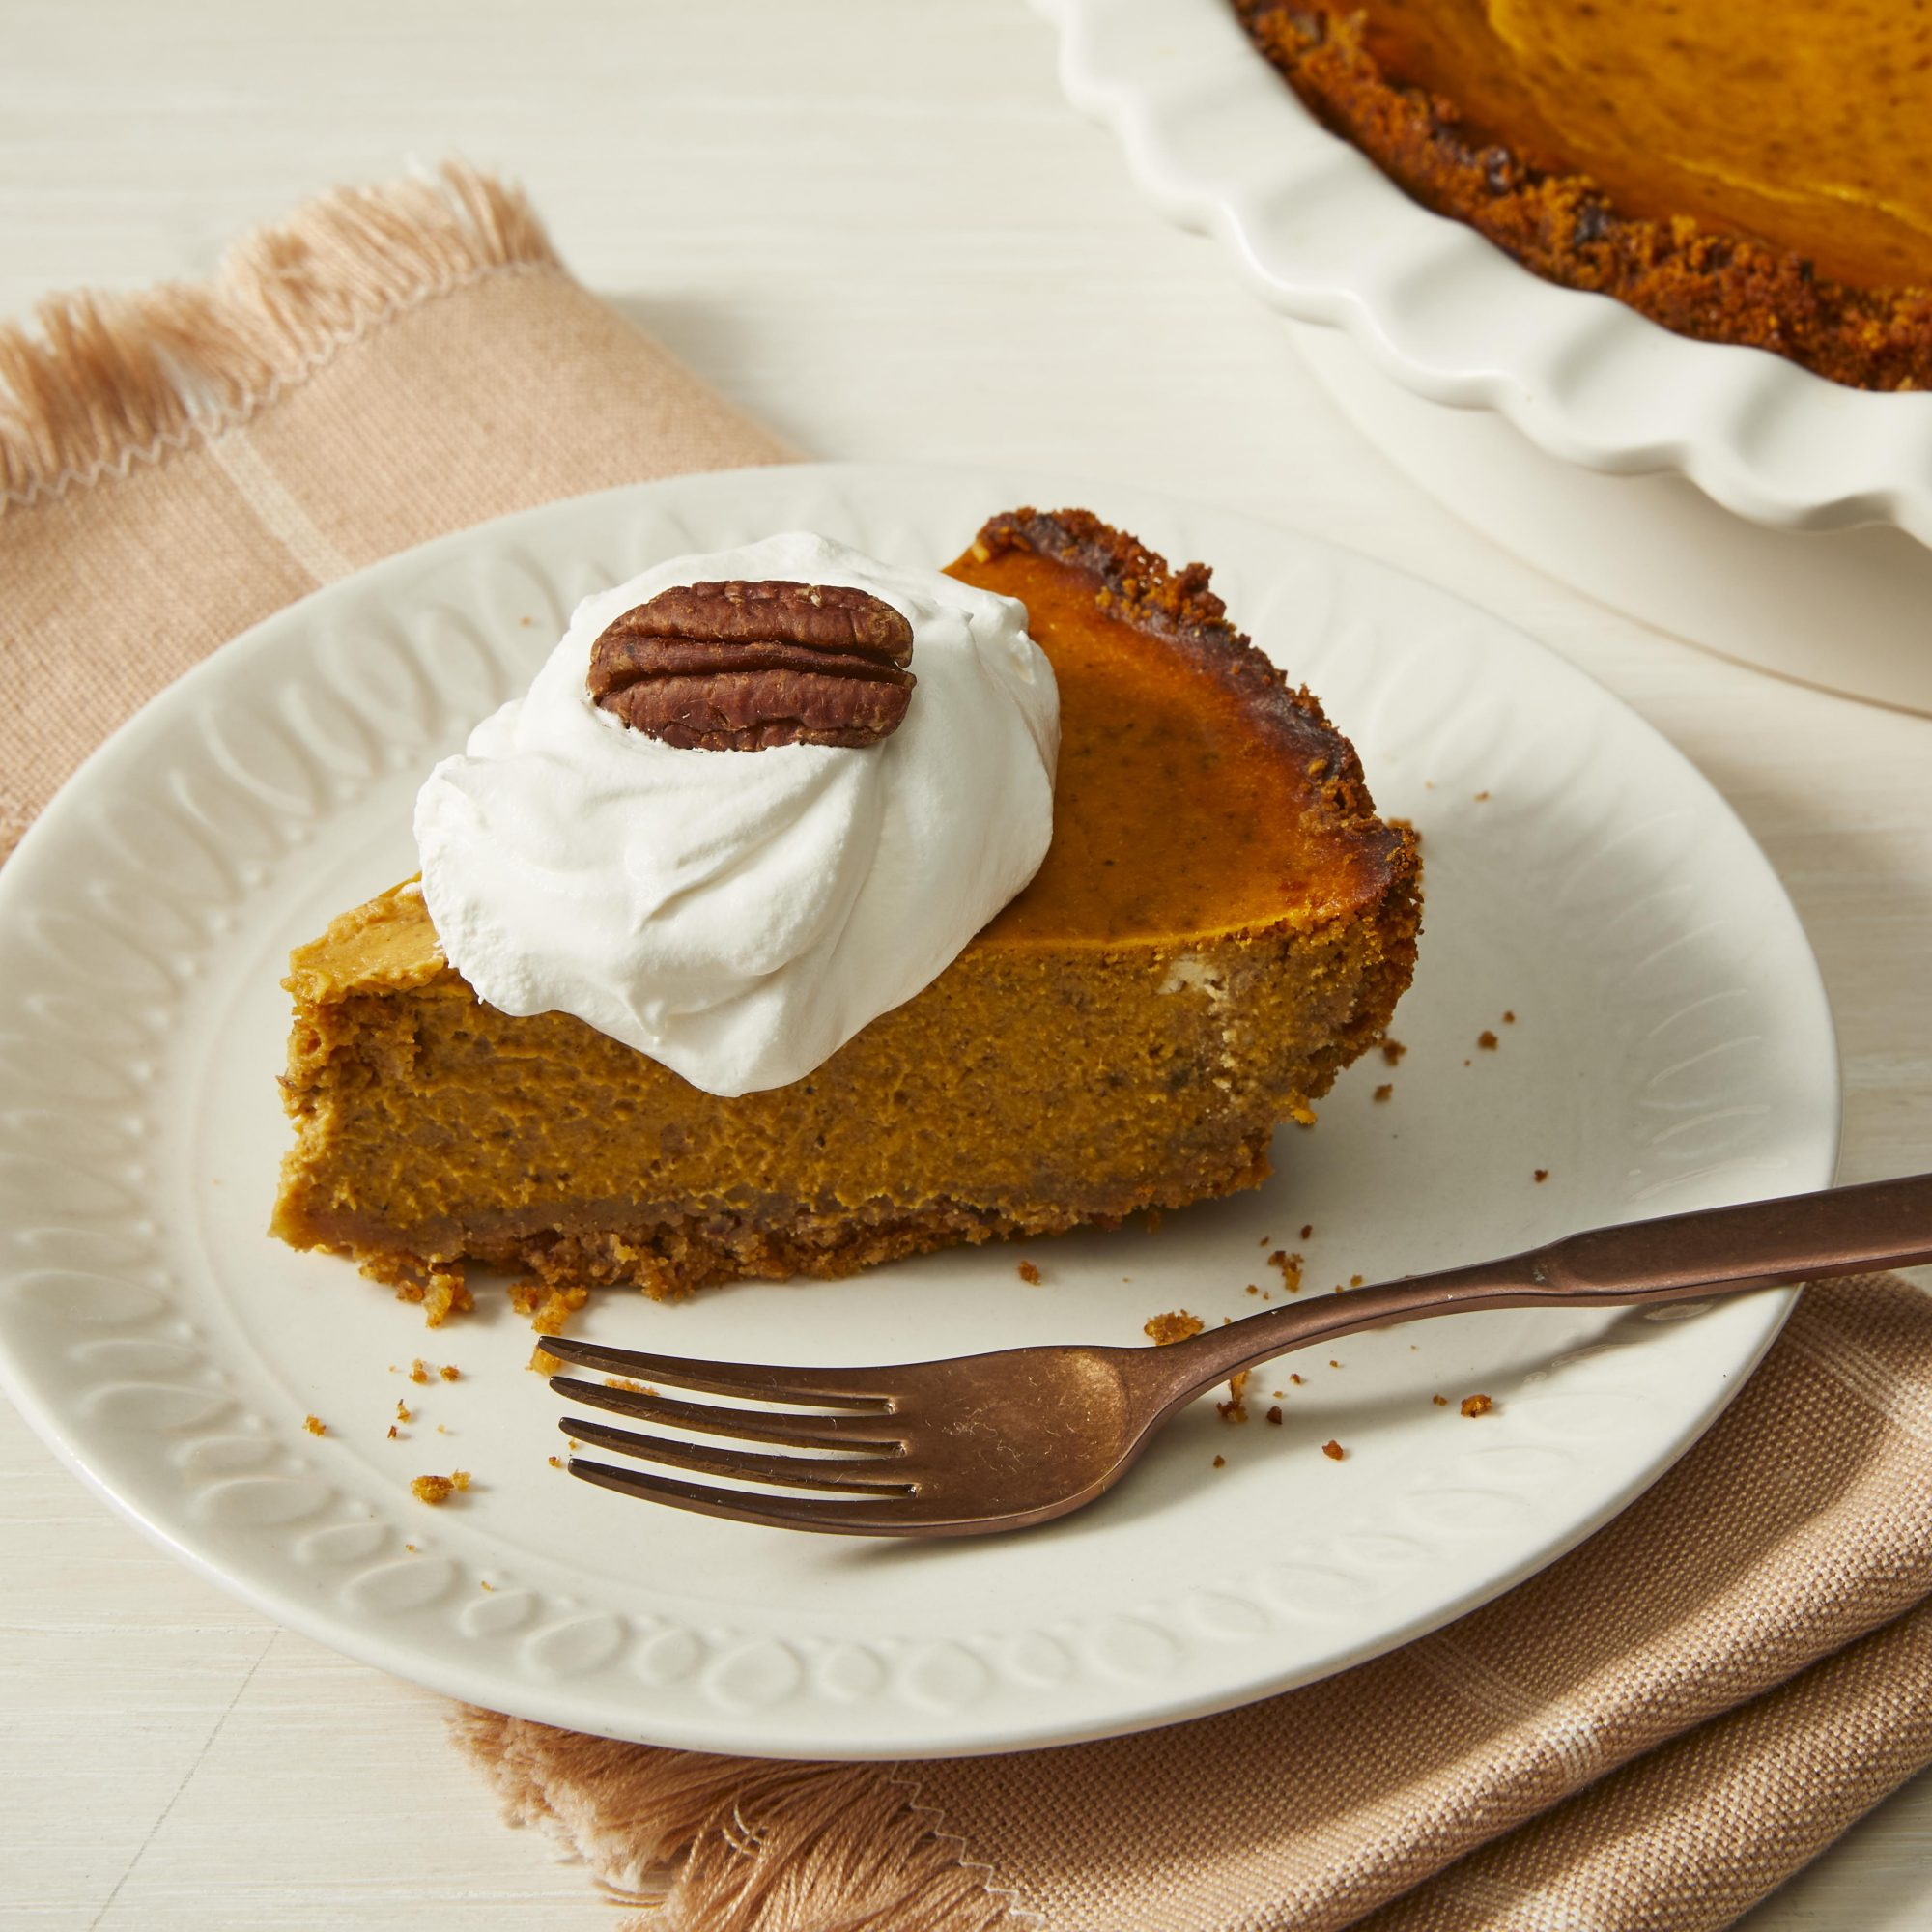 Slice of pumpkin pie with whipped cream and a pecan on top